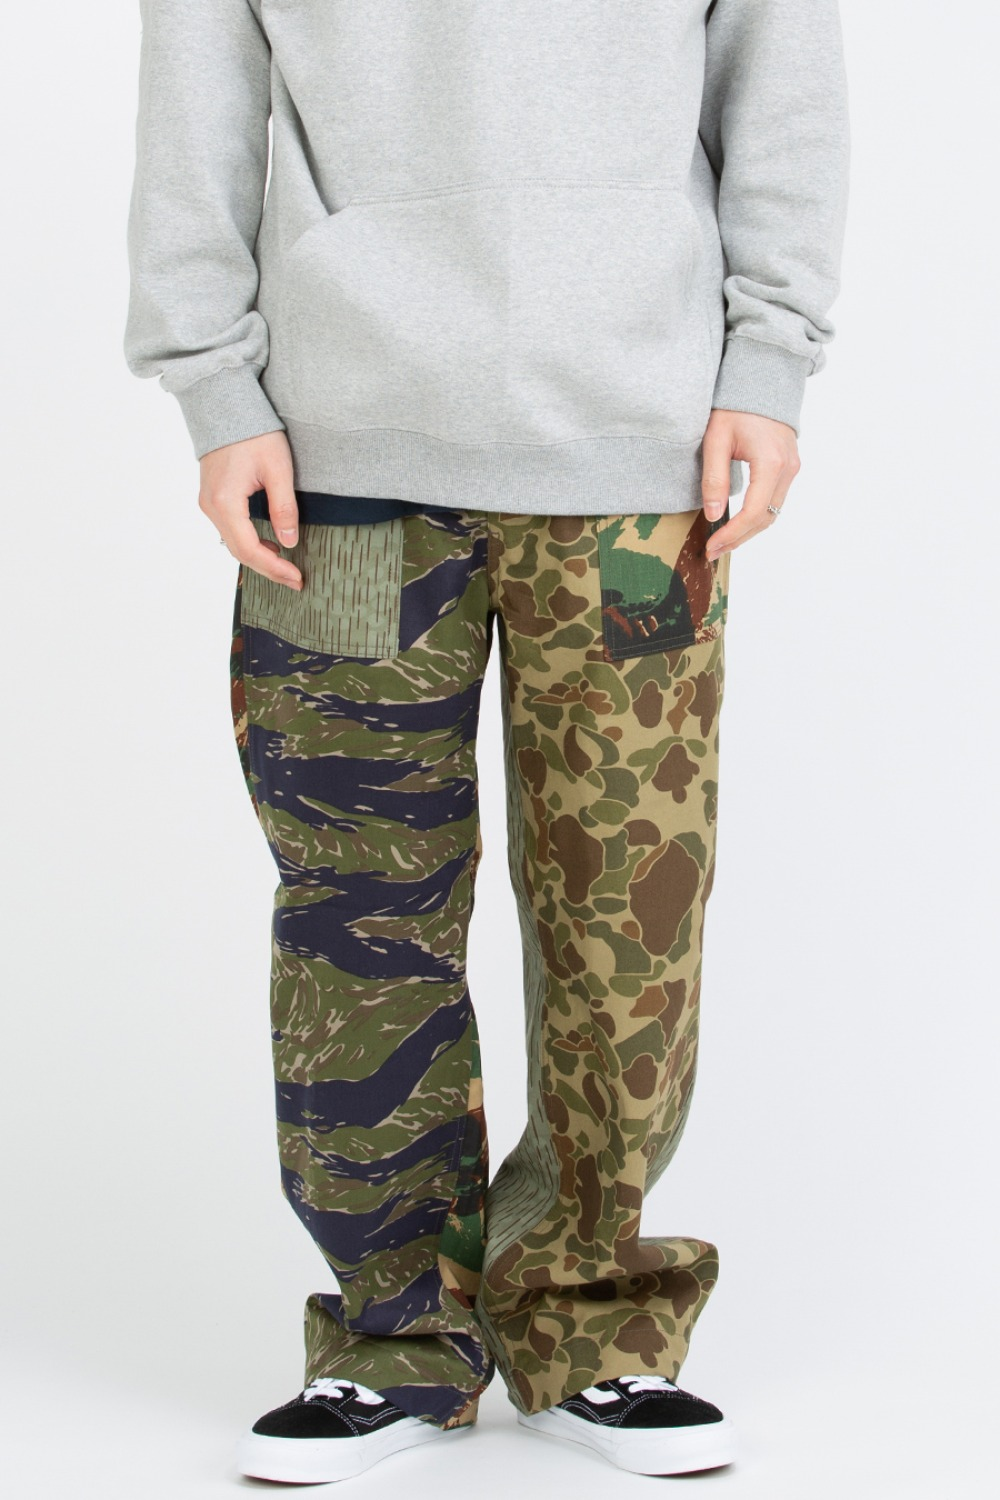 FATIGUE PANT - CRAZY CAMO